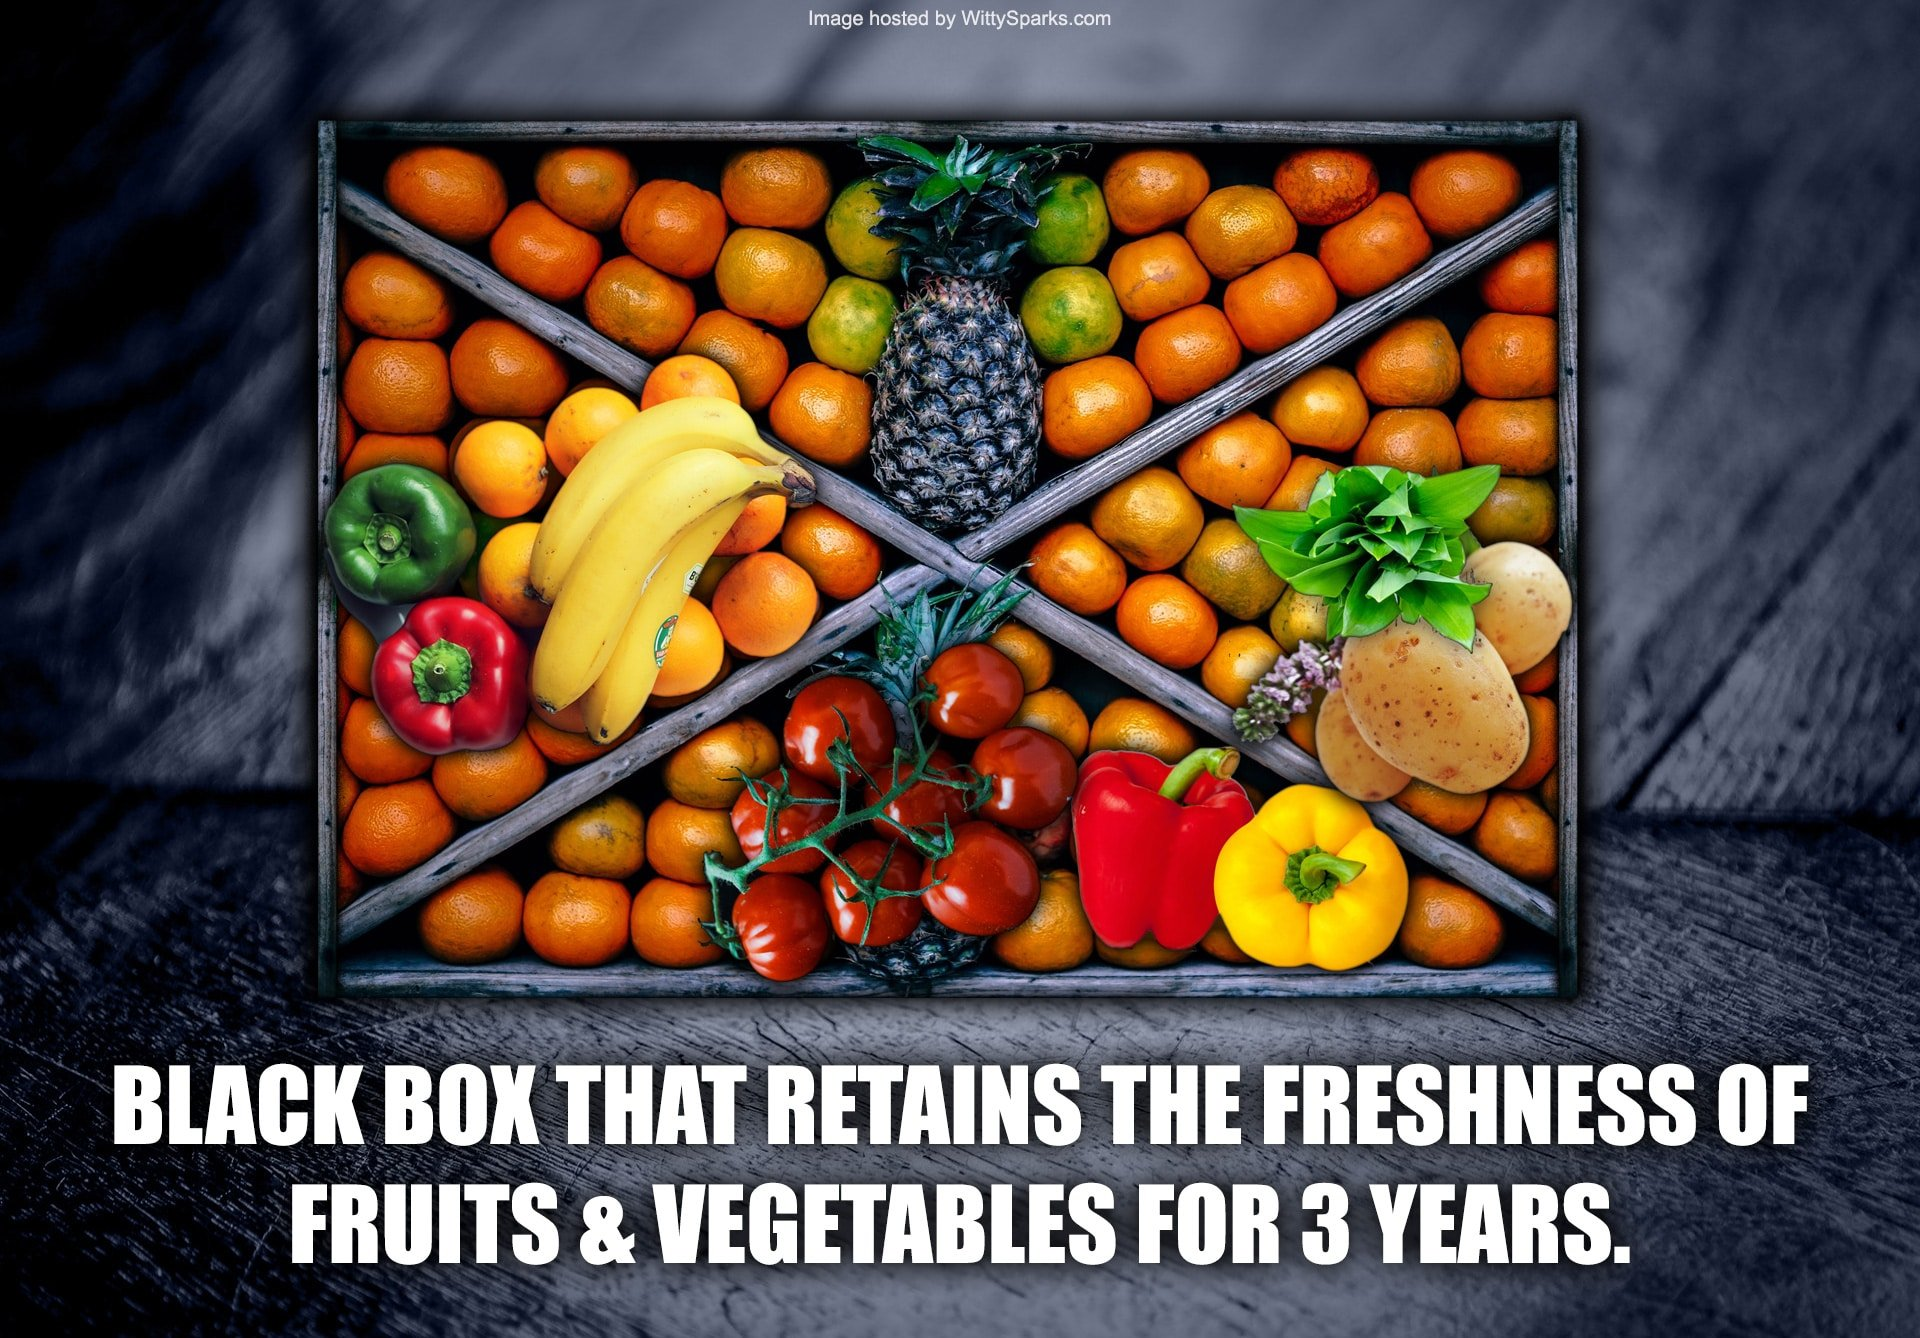 Black box that retains the freshness of fruits & vegetables for 3 years